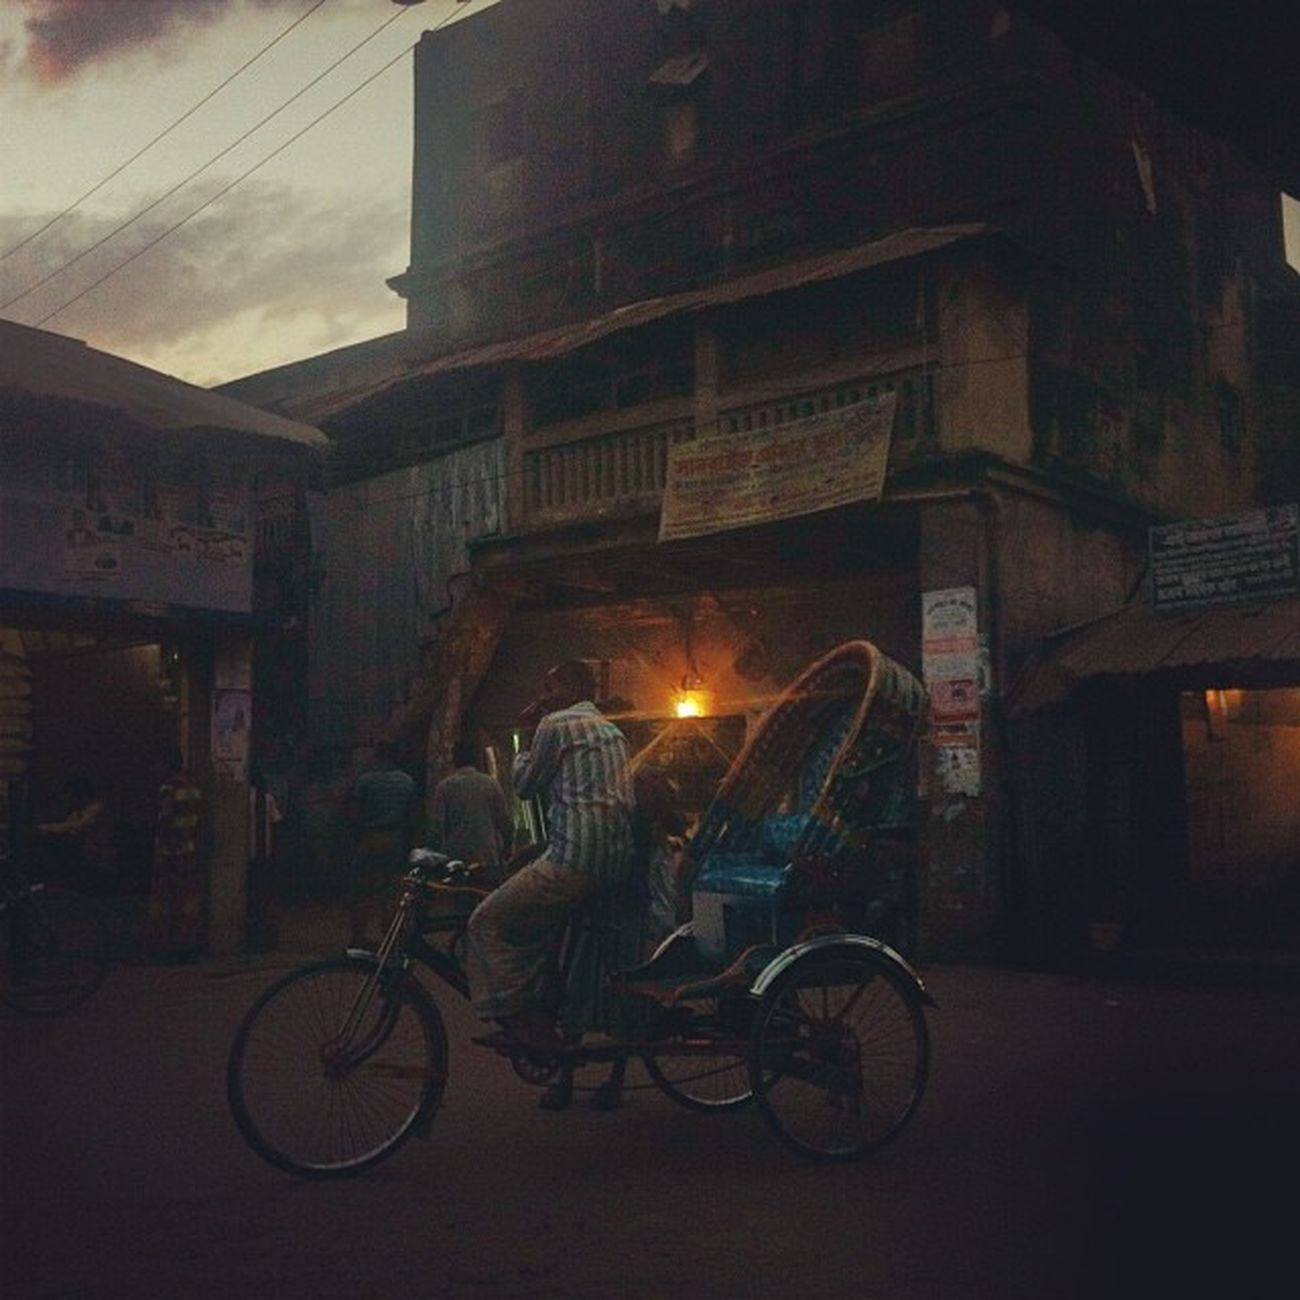 Dusk Solitude Rickshaw Daily Dark Life Street Chaktai Chittagong The Street Photographer - 2017 EyeEm Awards